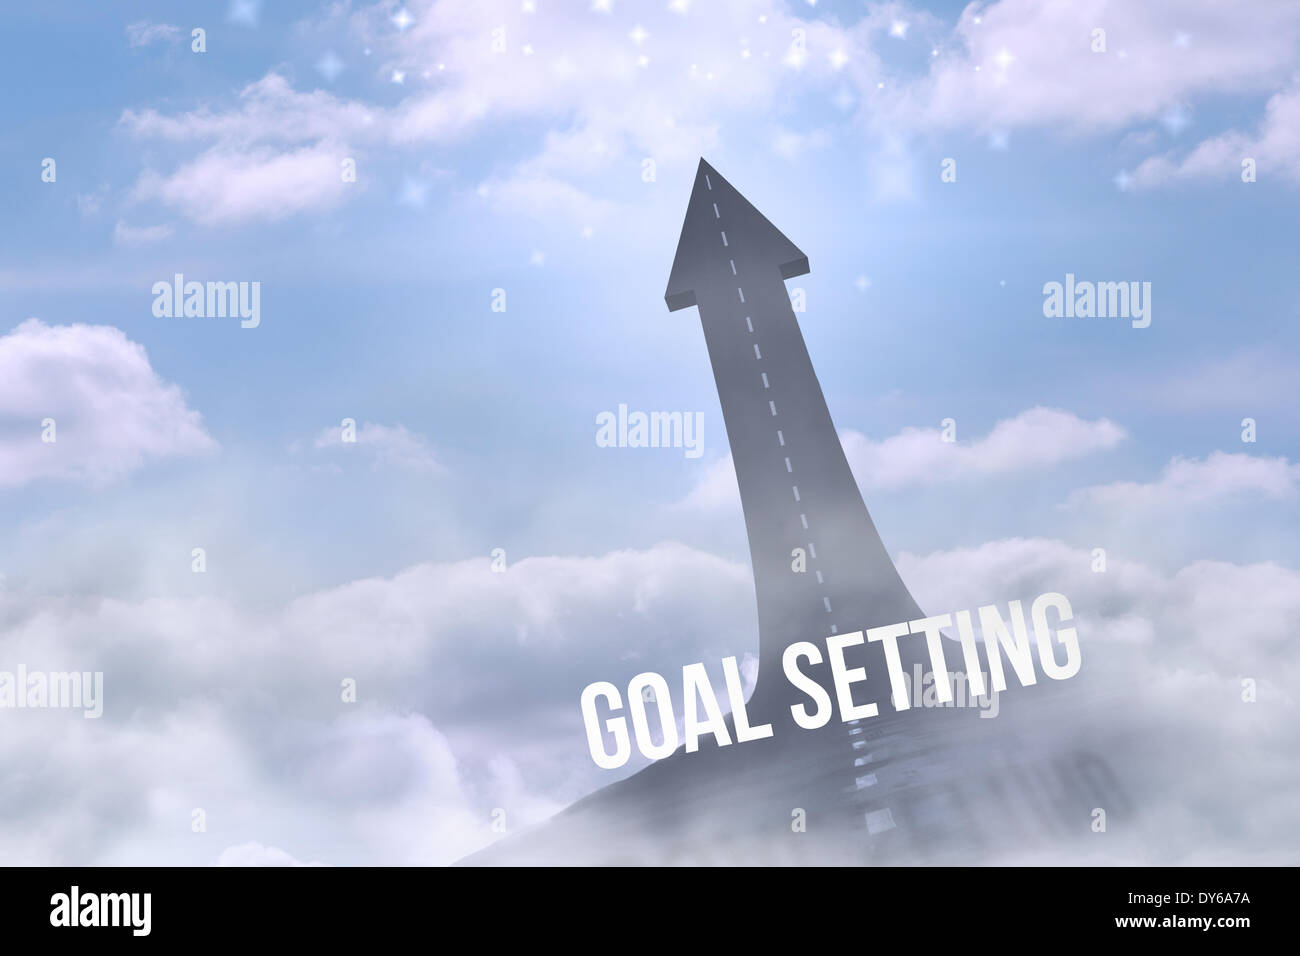 Goal setting against road turning into arrow - Stock Image